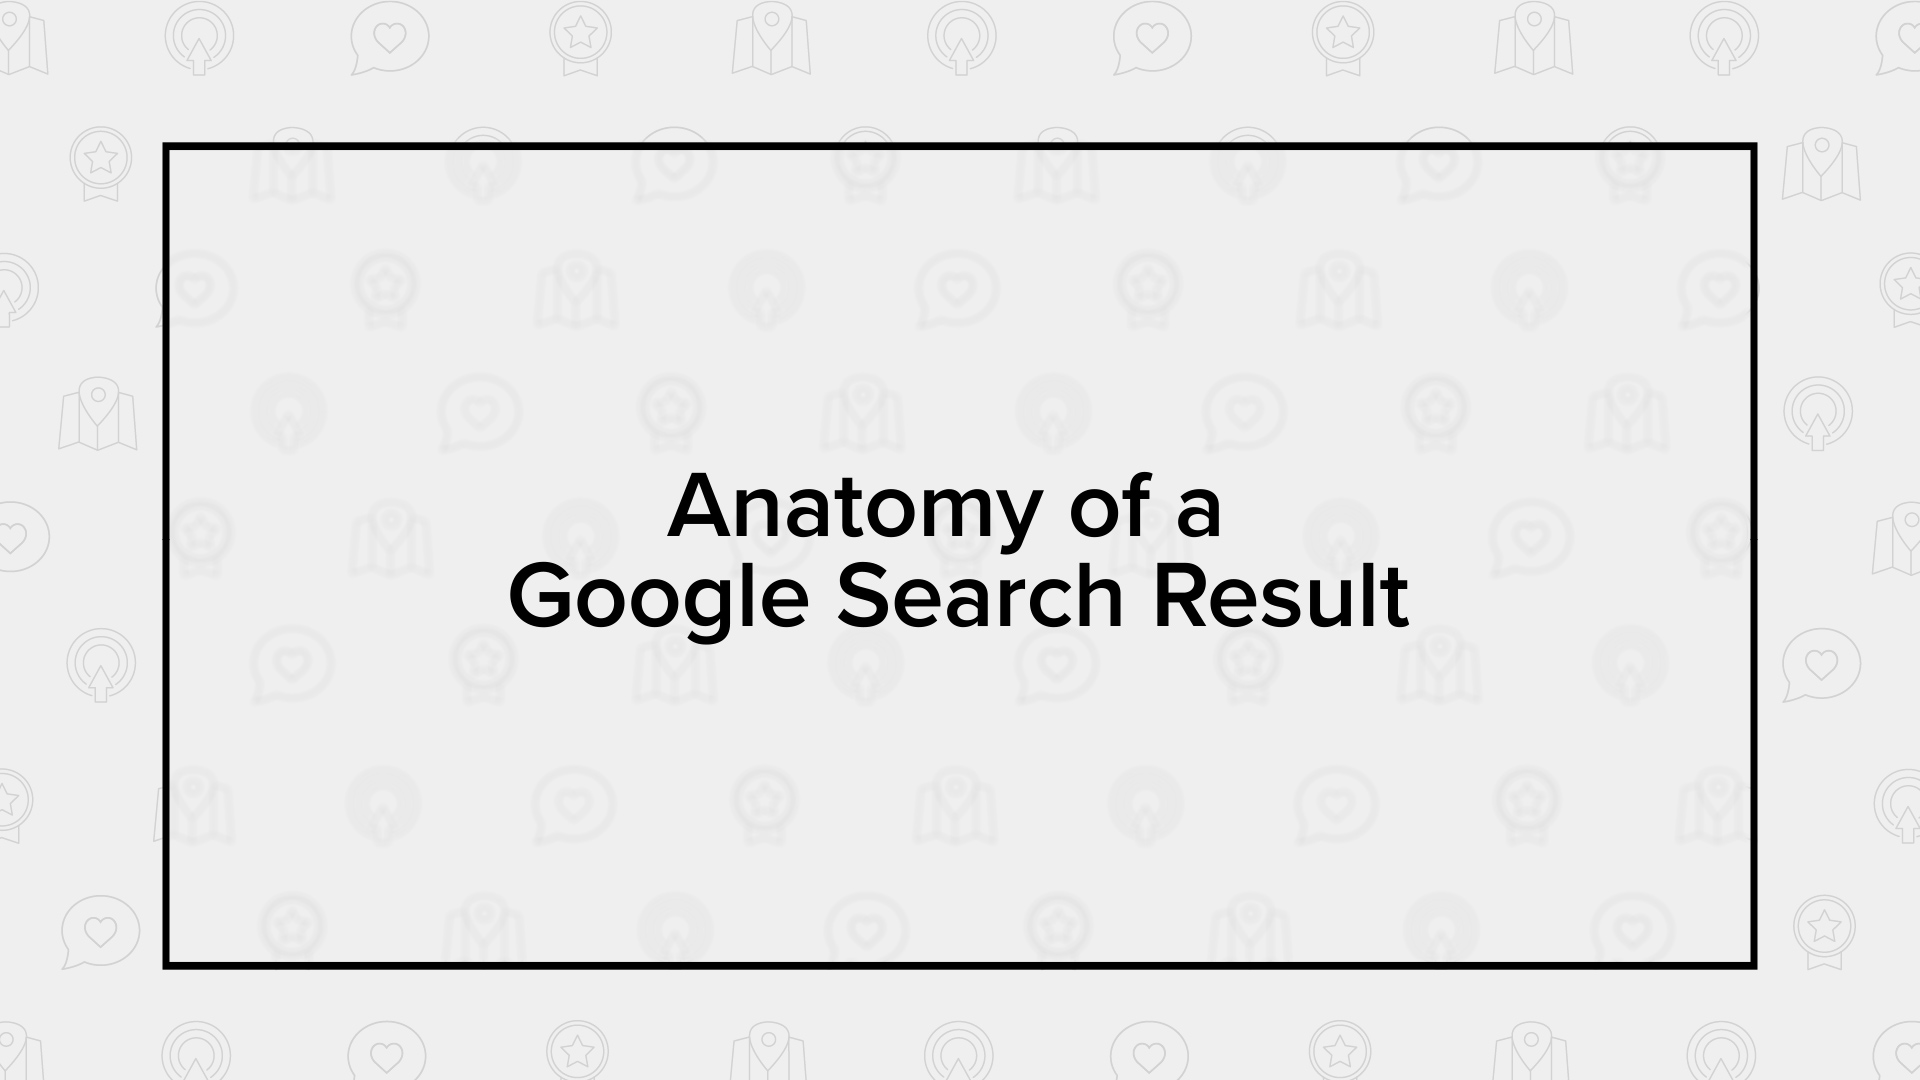 Anatomy of a Google Search Result